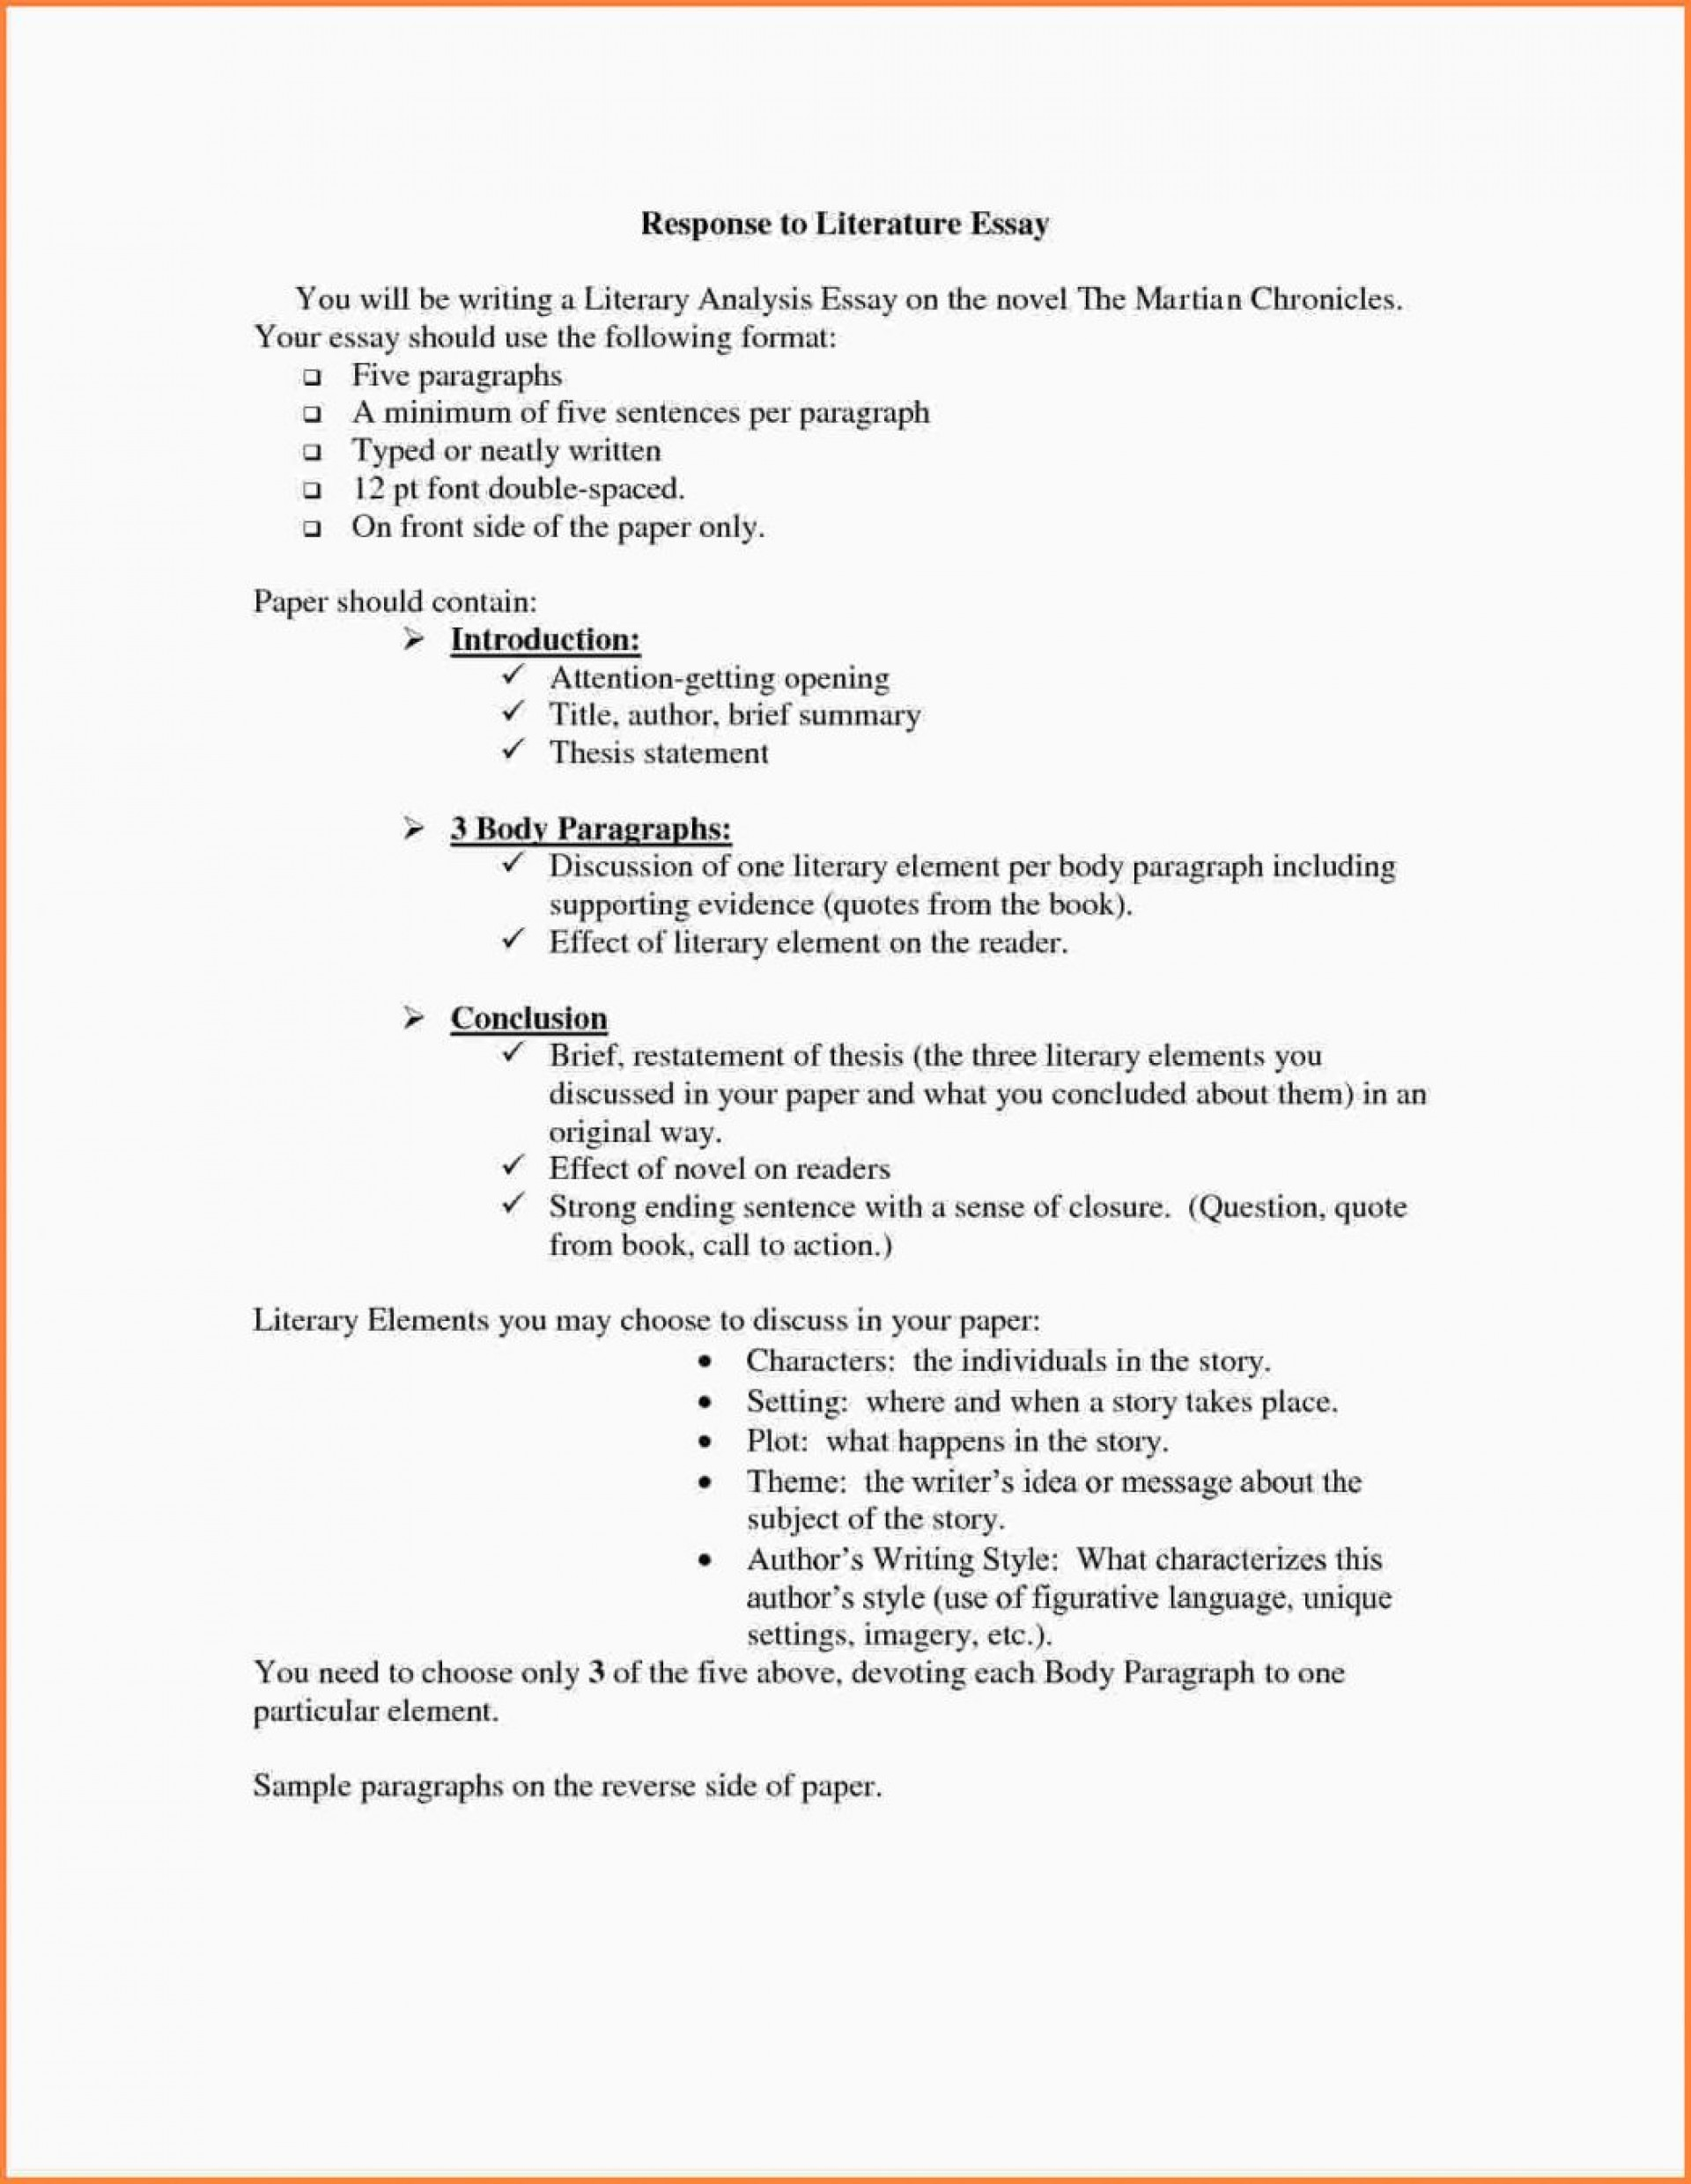 004 Literary Criticism Essay How To Write Poetry Analysis Text Response Outline Awesome Collection Of Example Best Examples Textual Format Excellent On The Great Gatsby Ideas Conclusion Sample 1920